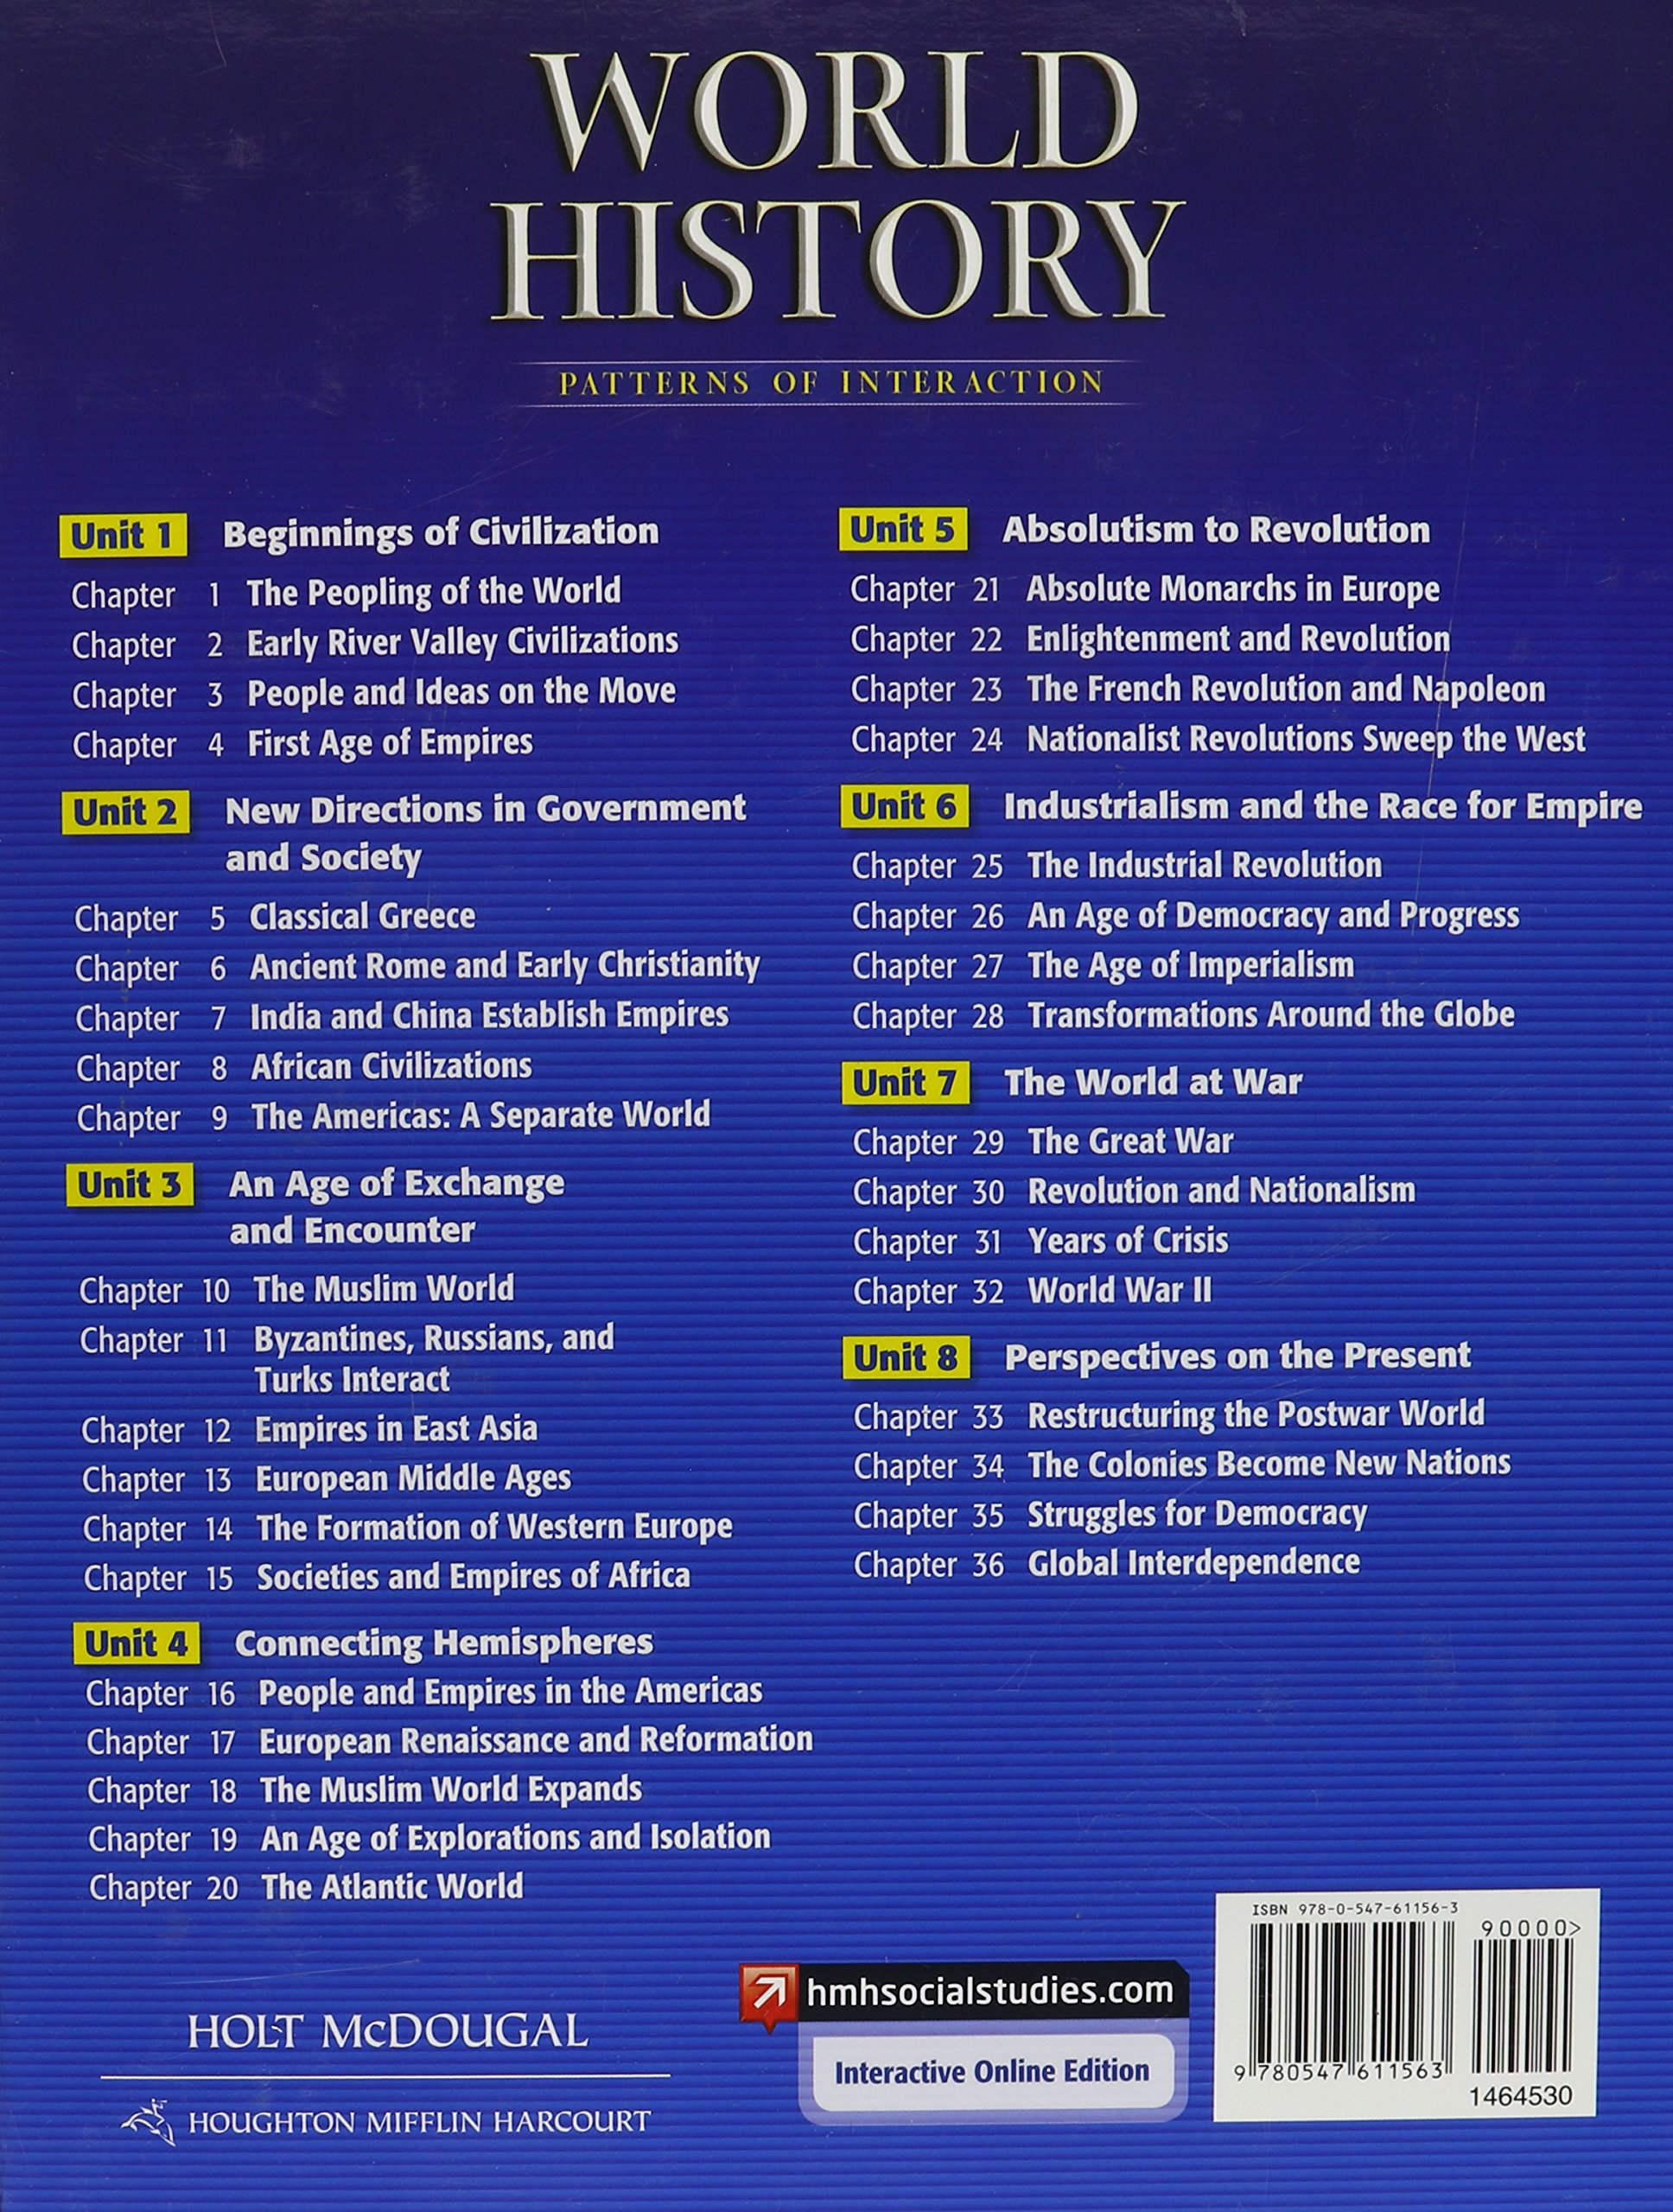 worksheet World History Patterns Of Interaction Worksheets holt mcdougal world history patterns of interaction 2012 new york student edition 9780547